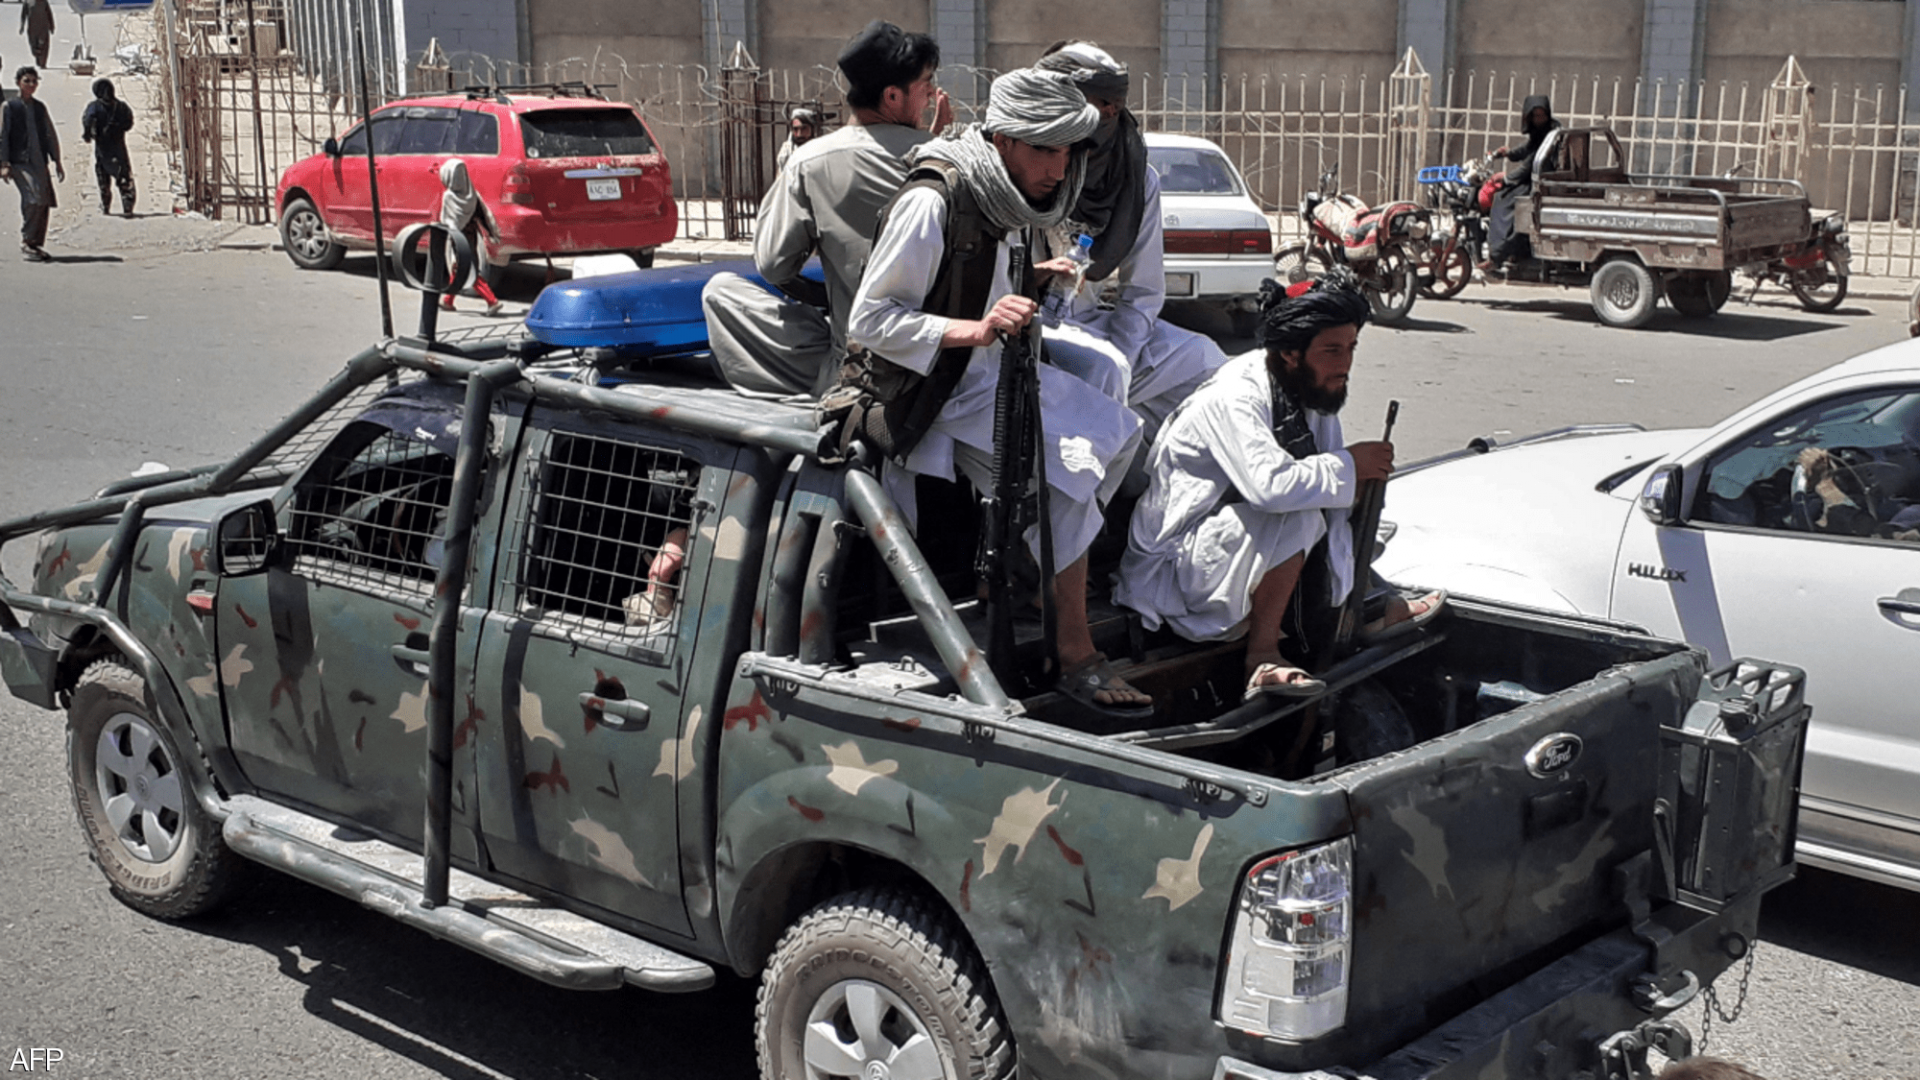 After the president fled the Taliban orders its fighters to enter Kabul